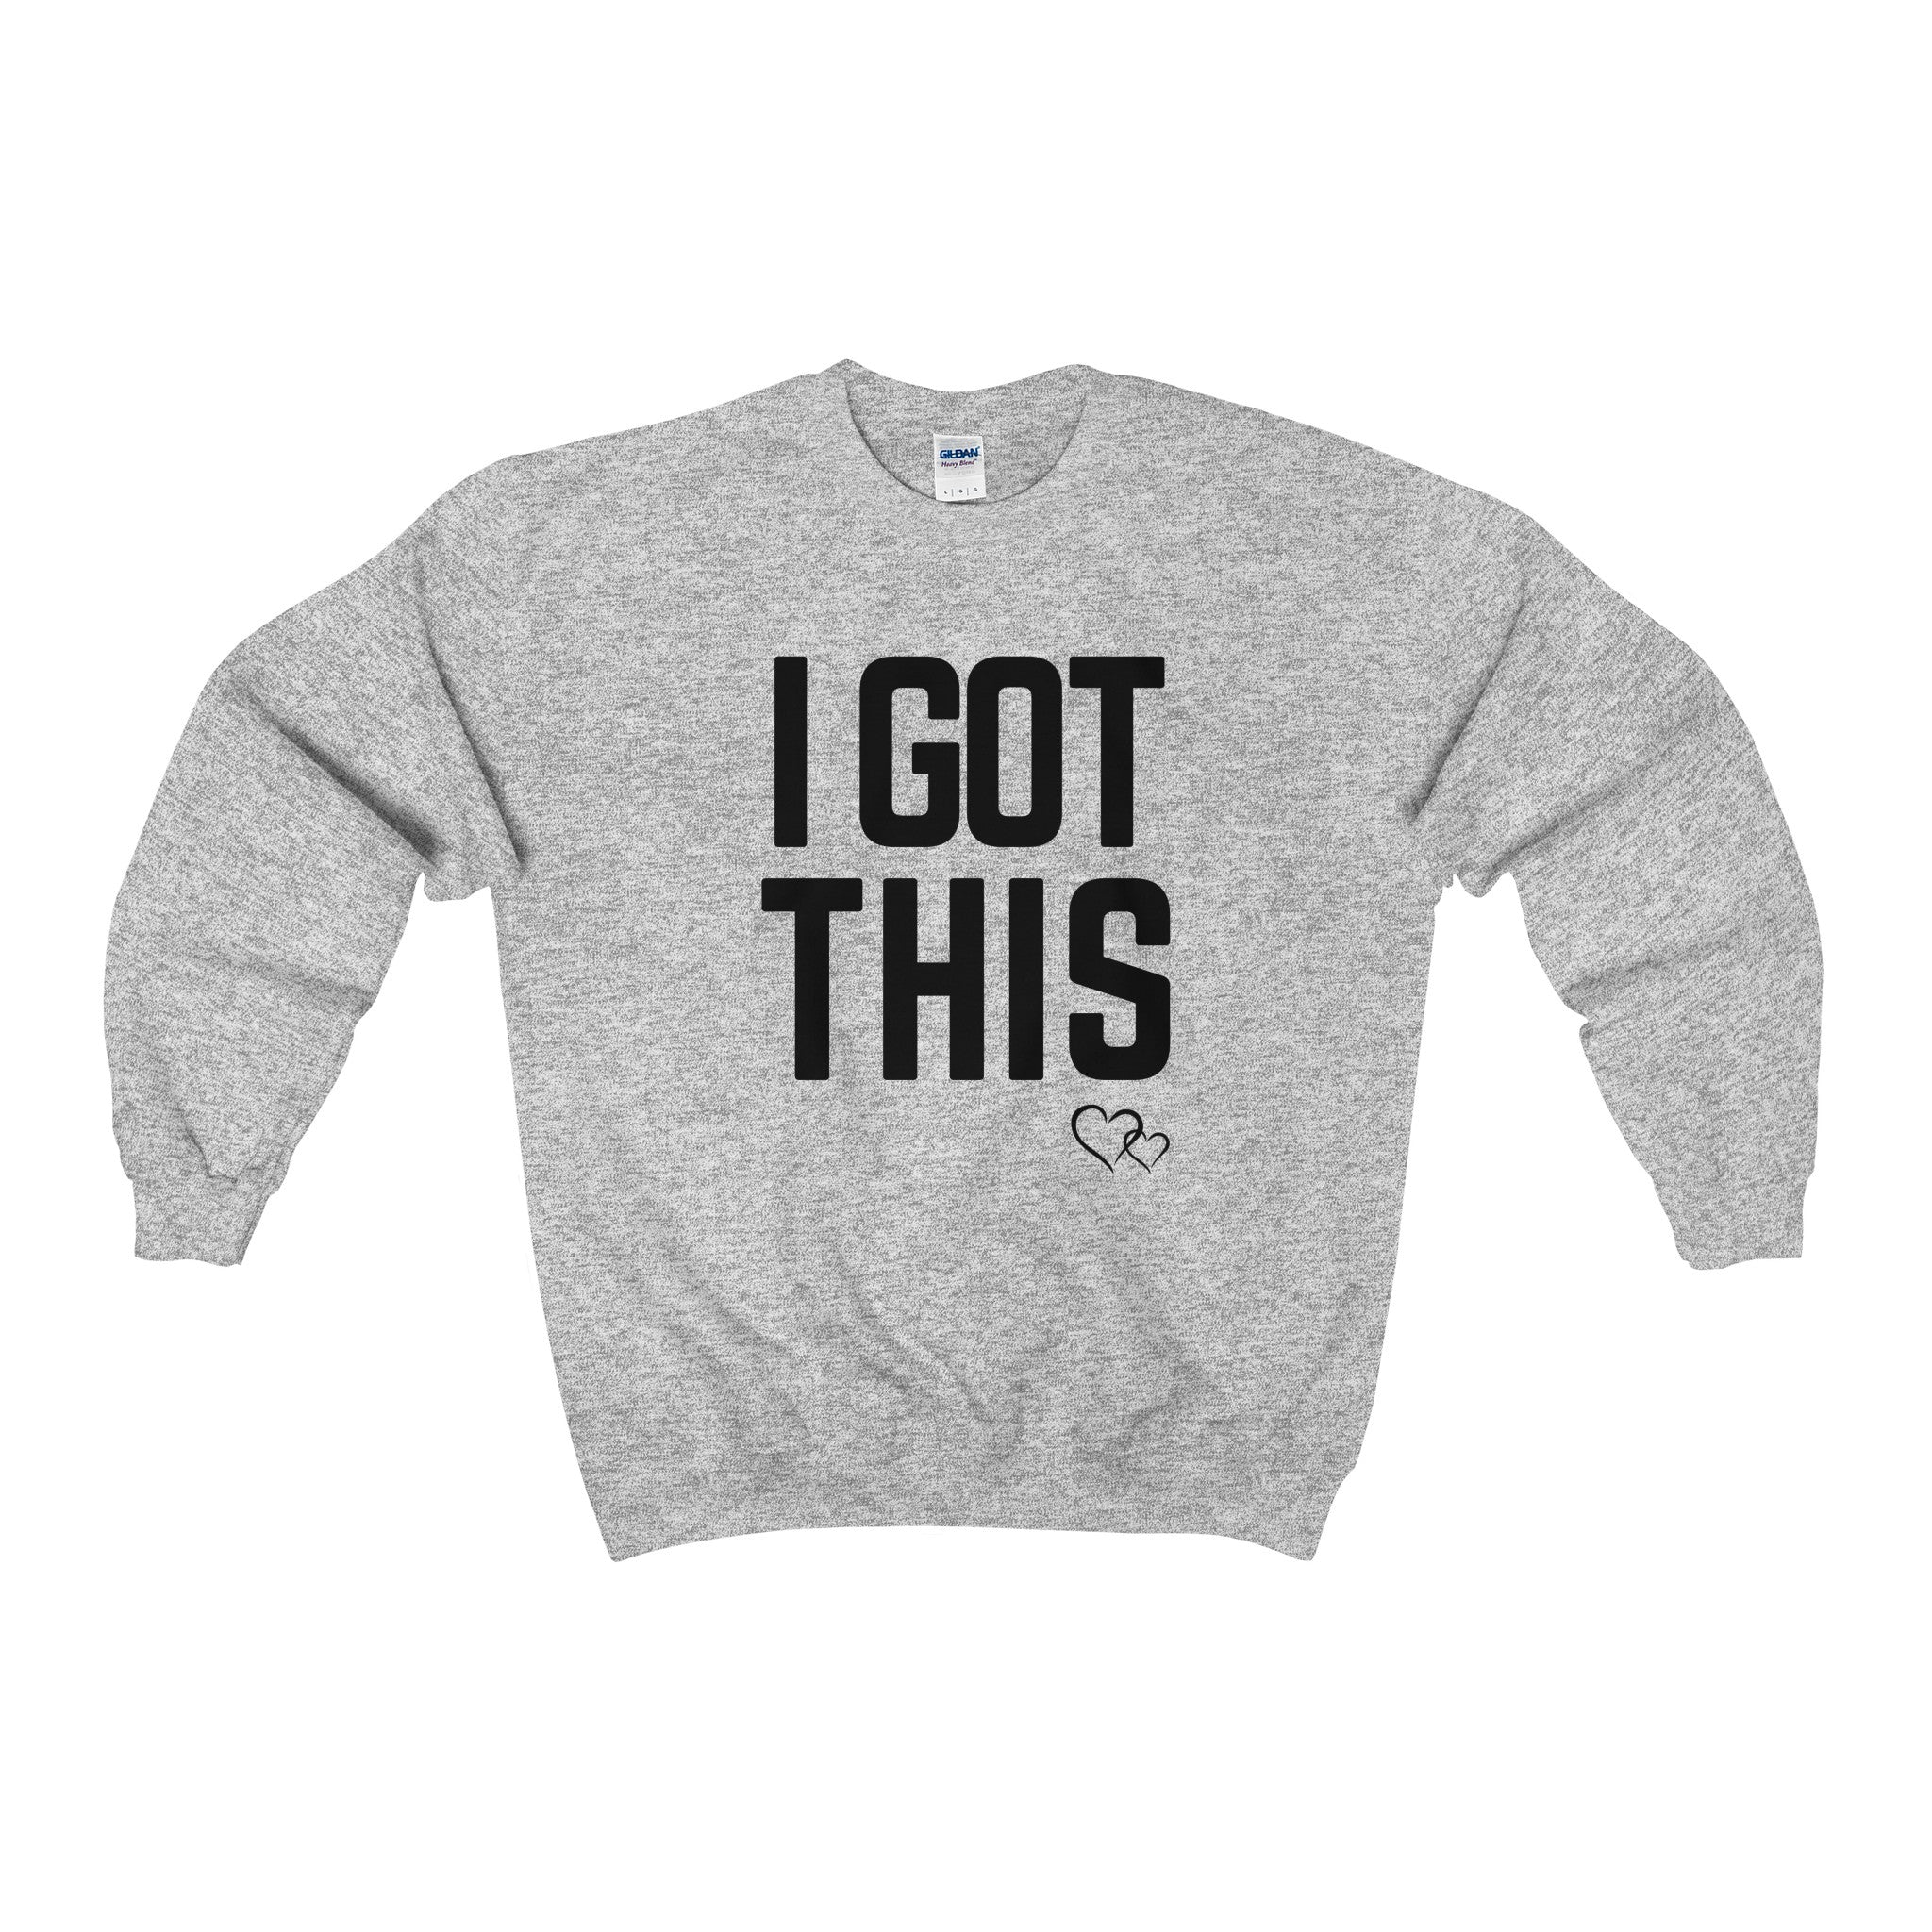 I GOT THIS - Sweatshirt (Unisex)